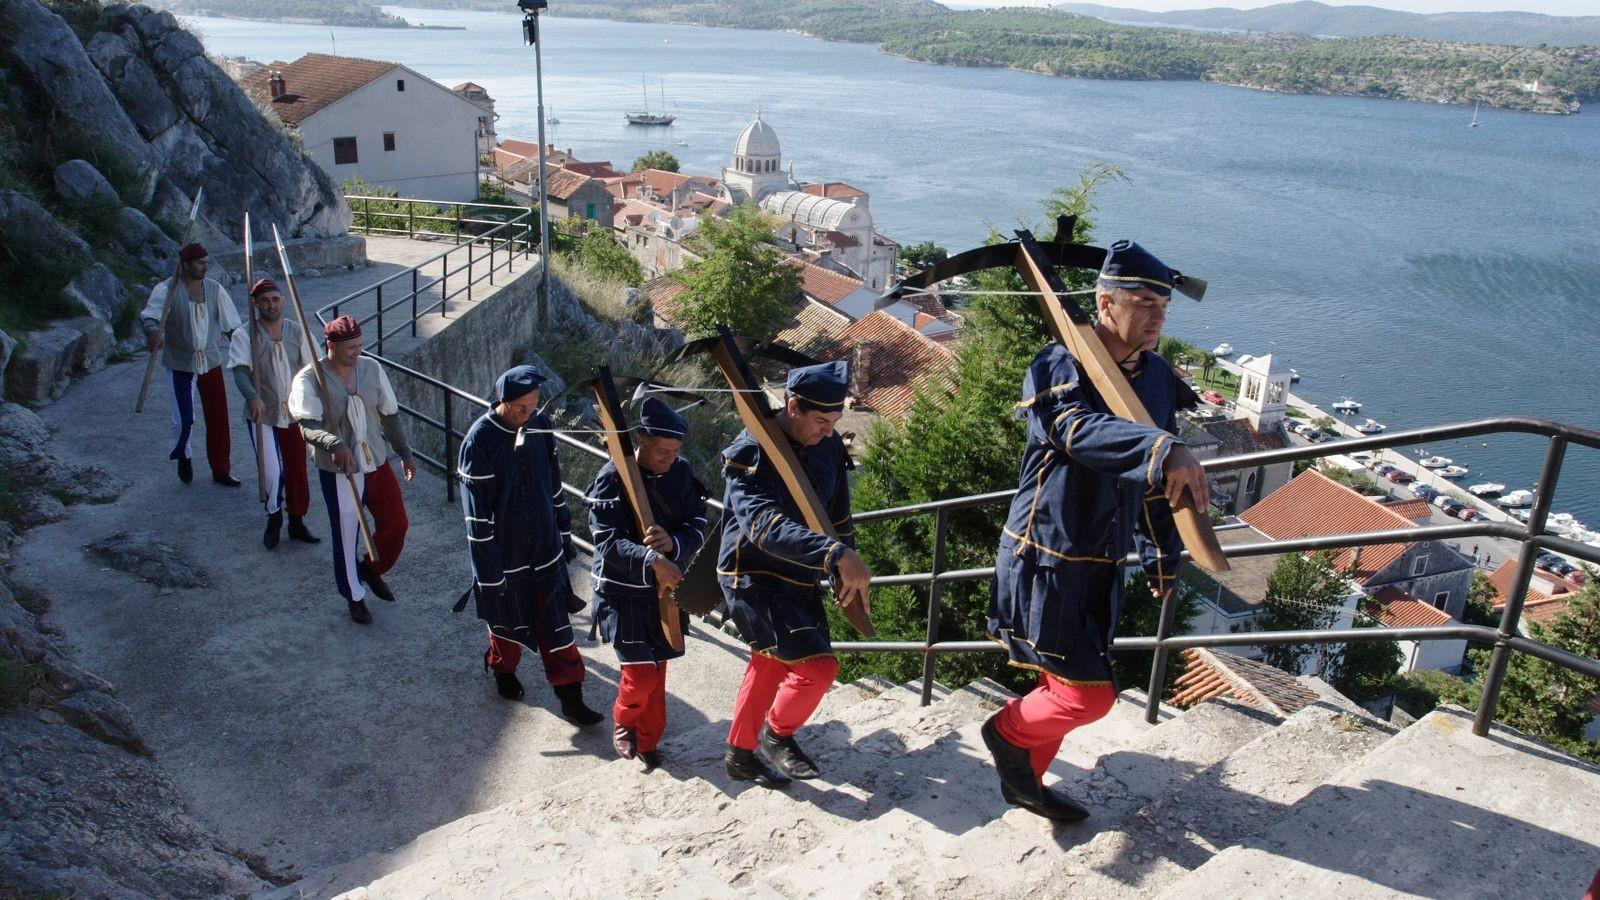 Medieval Fair in Šibenik Croatia: Travelling back in famous historical times of the city